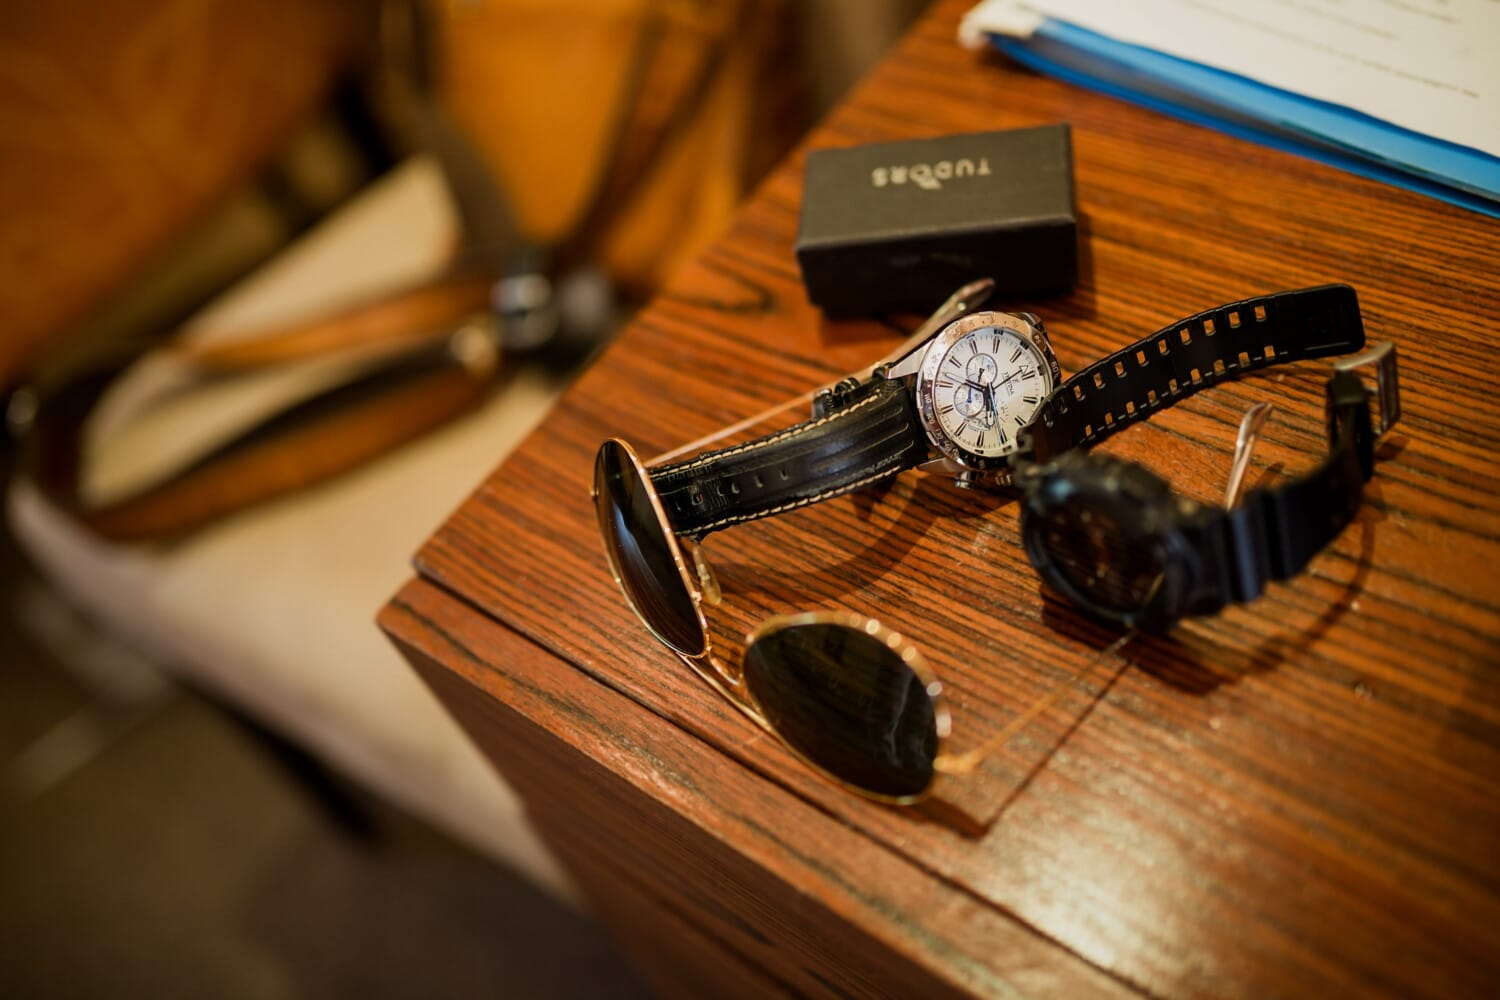 fashion, clock, fancy, sunglasses, office, workplace, table, time, device, wood